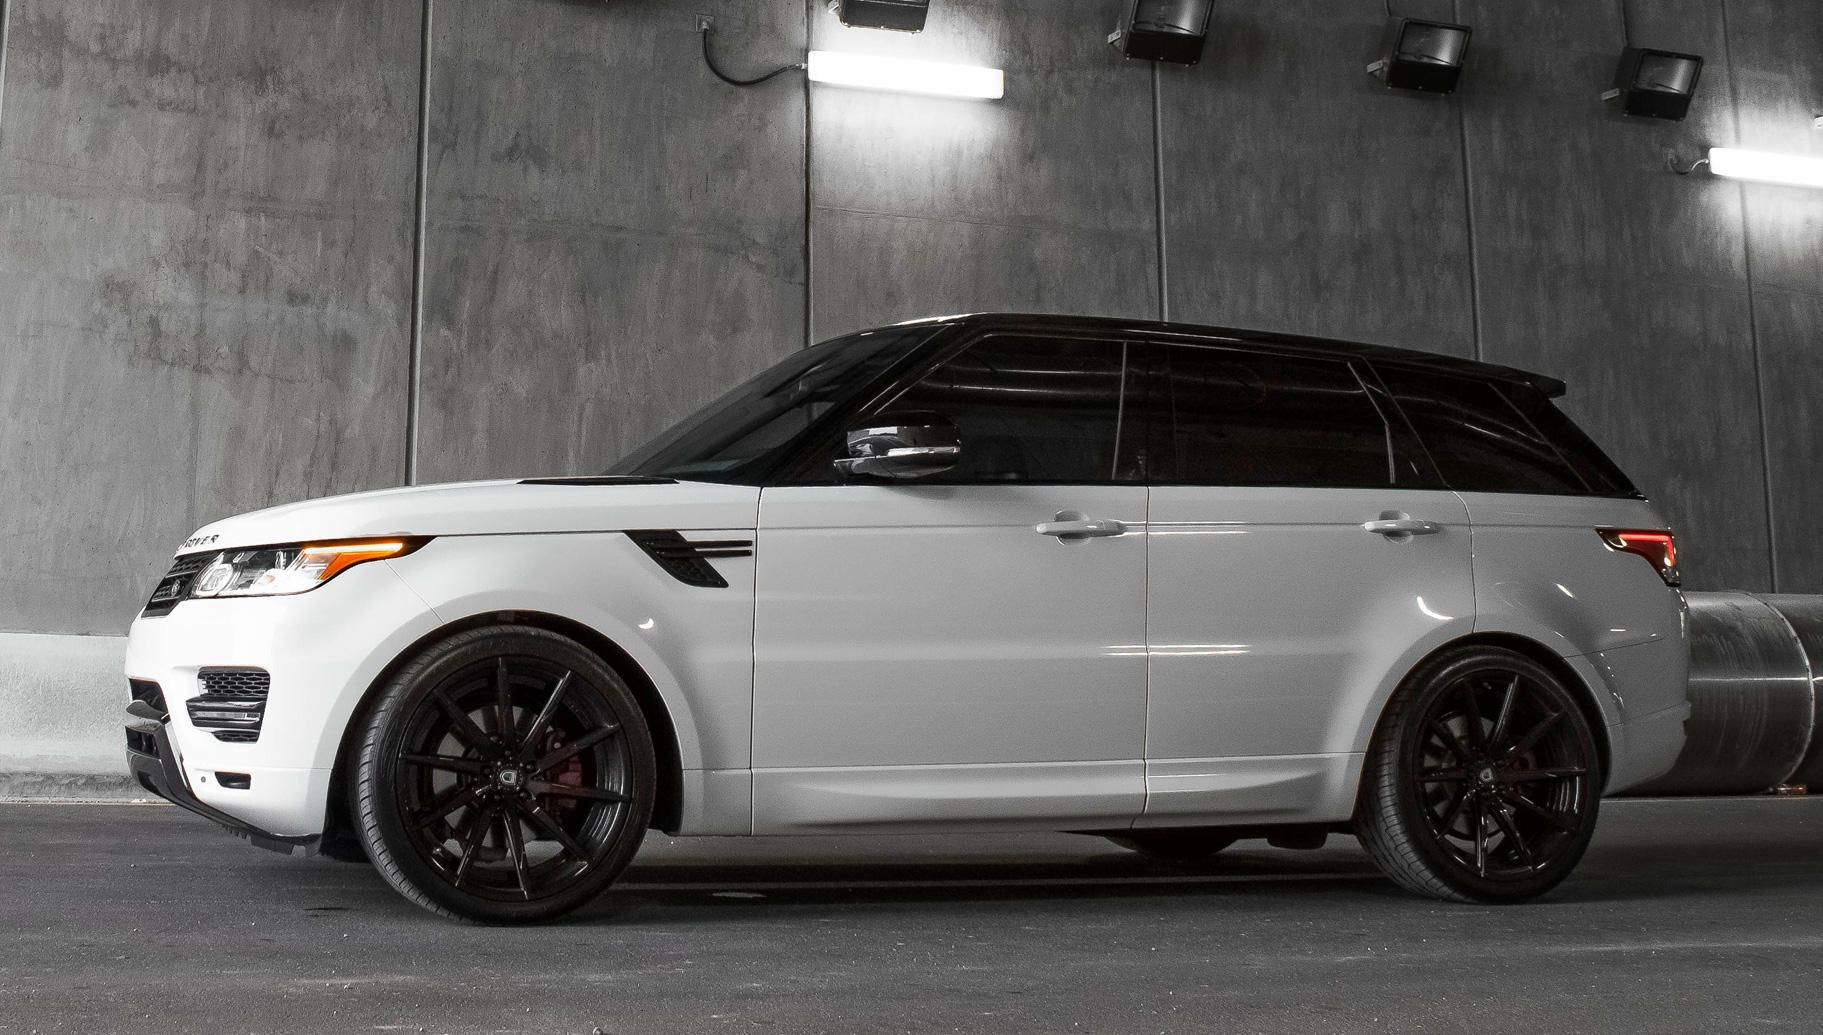 Lexani Custom Luxury Wheels Vehicle Gallery Range Rover Sport Autobiography Range Rover Supercharged Land Rover Discovery Sport